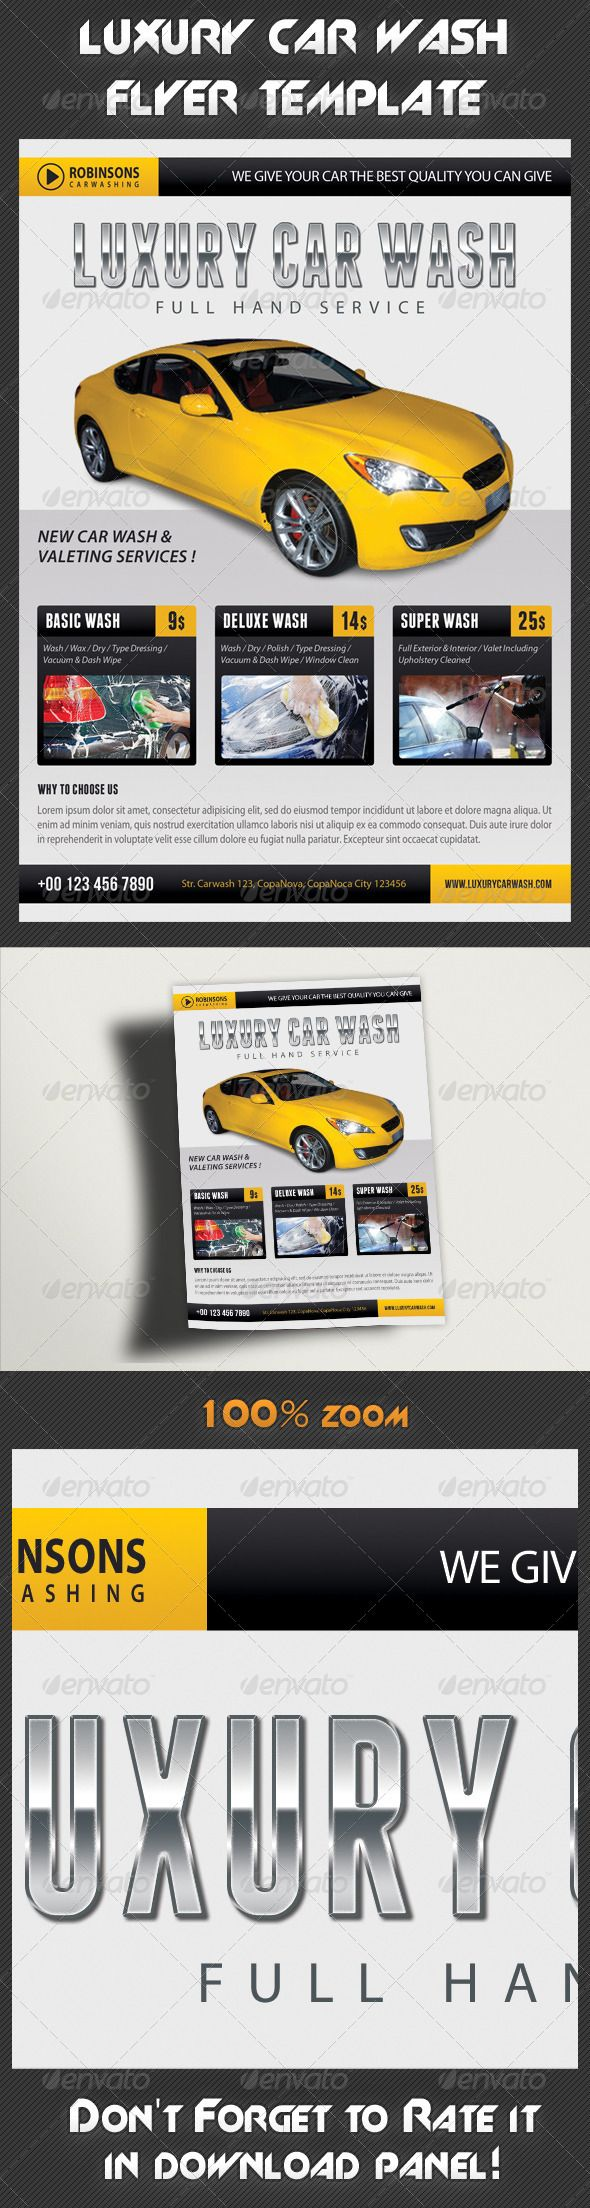 Car Wash Flyer 03 Used Luxury Cars Car Wash Flyer